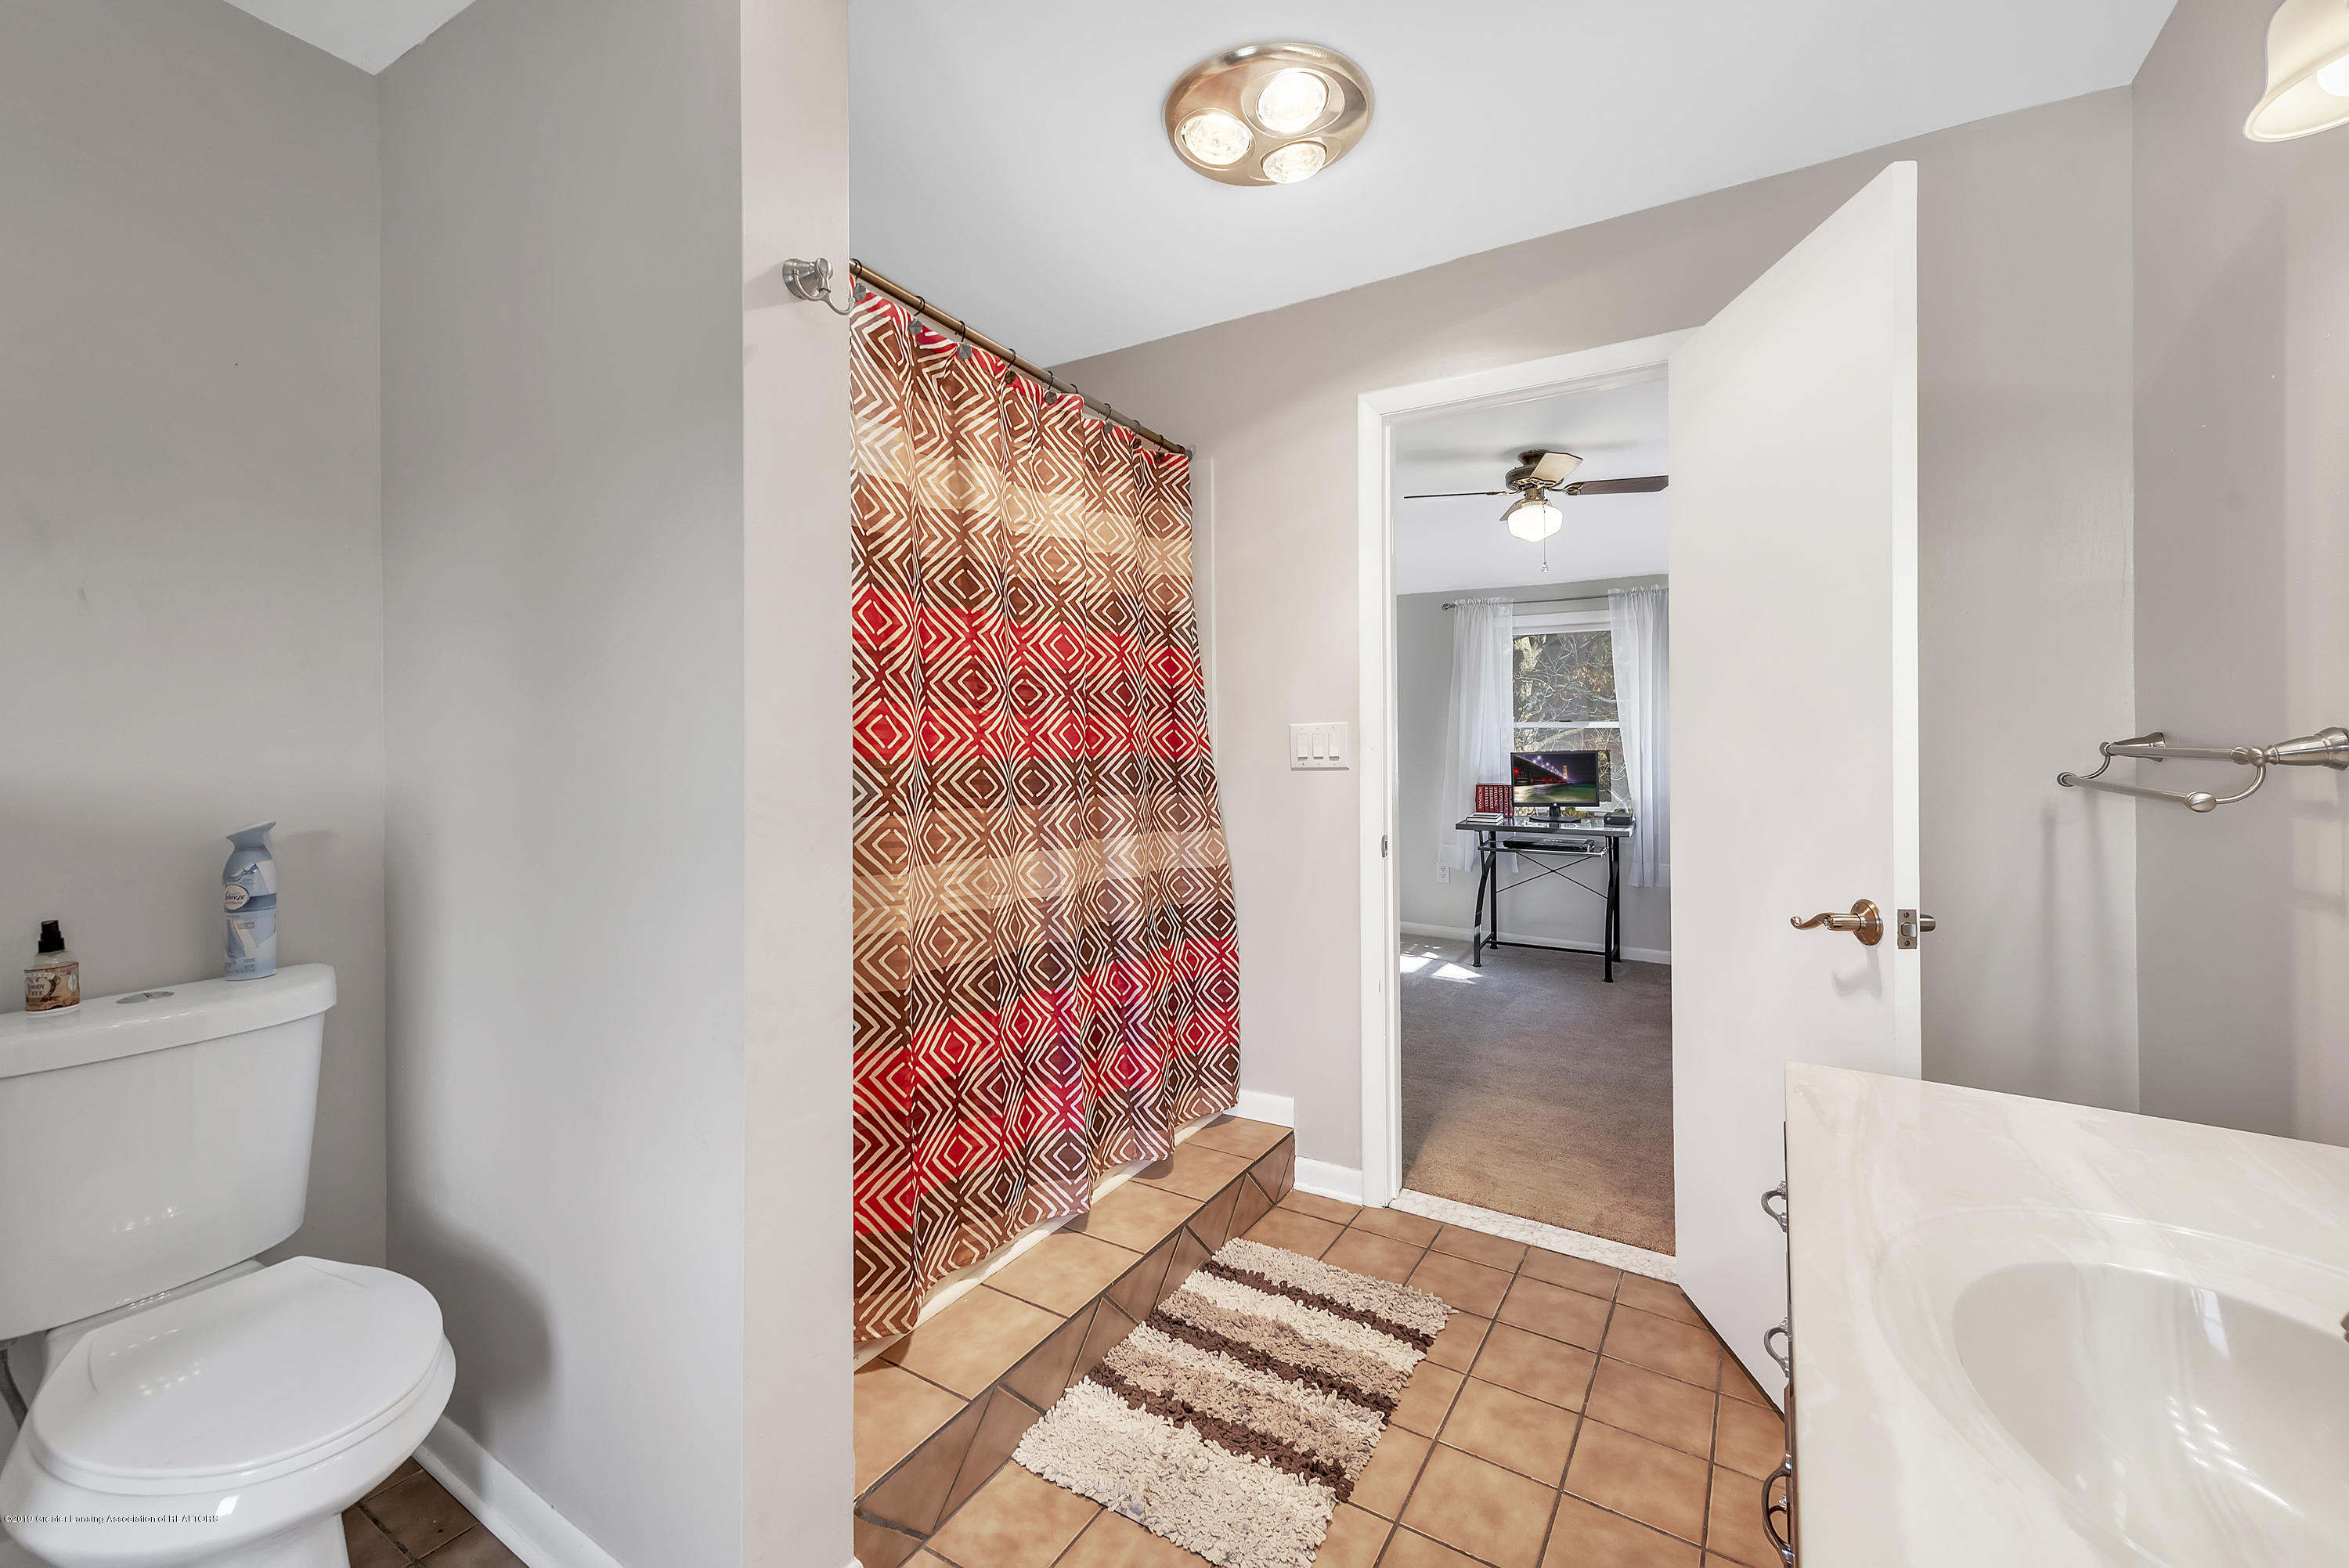 8700 Abbey Rd - 8700-Abbey-Rd-WindowStill-Real-Estate-Ph - 12